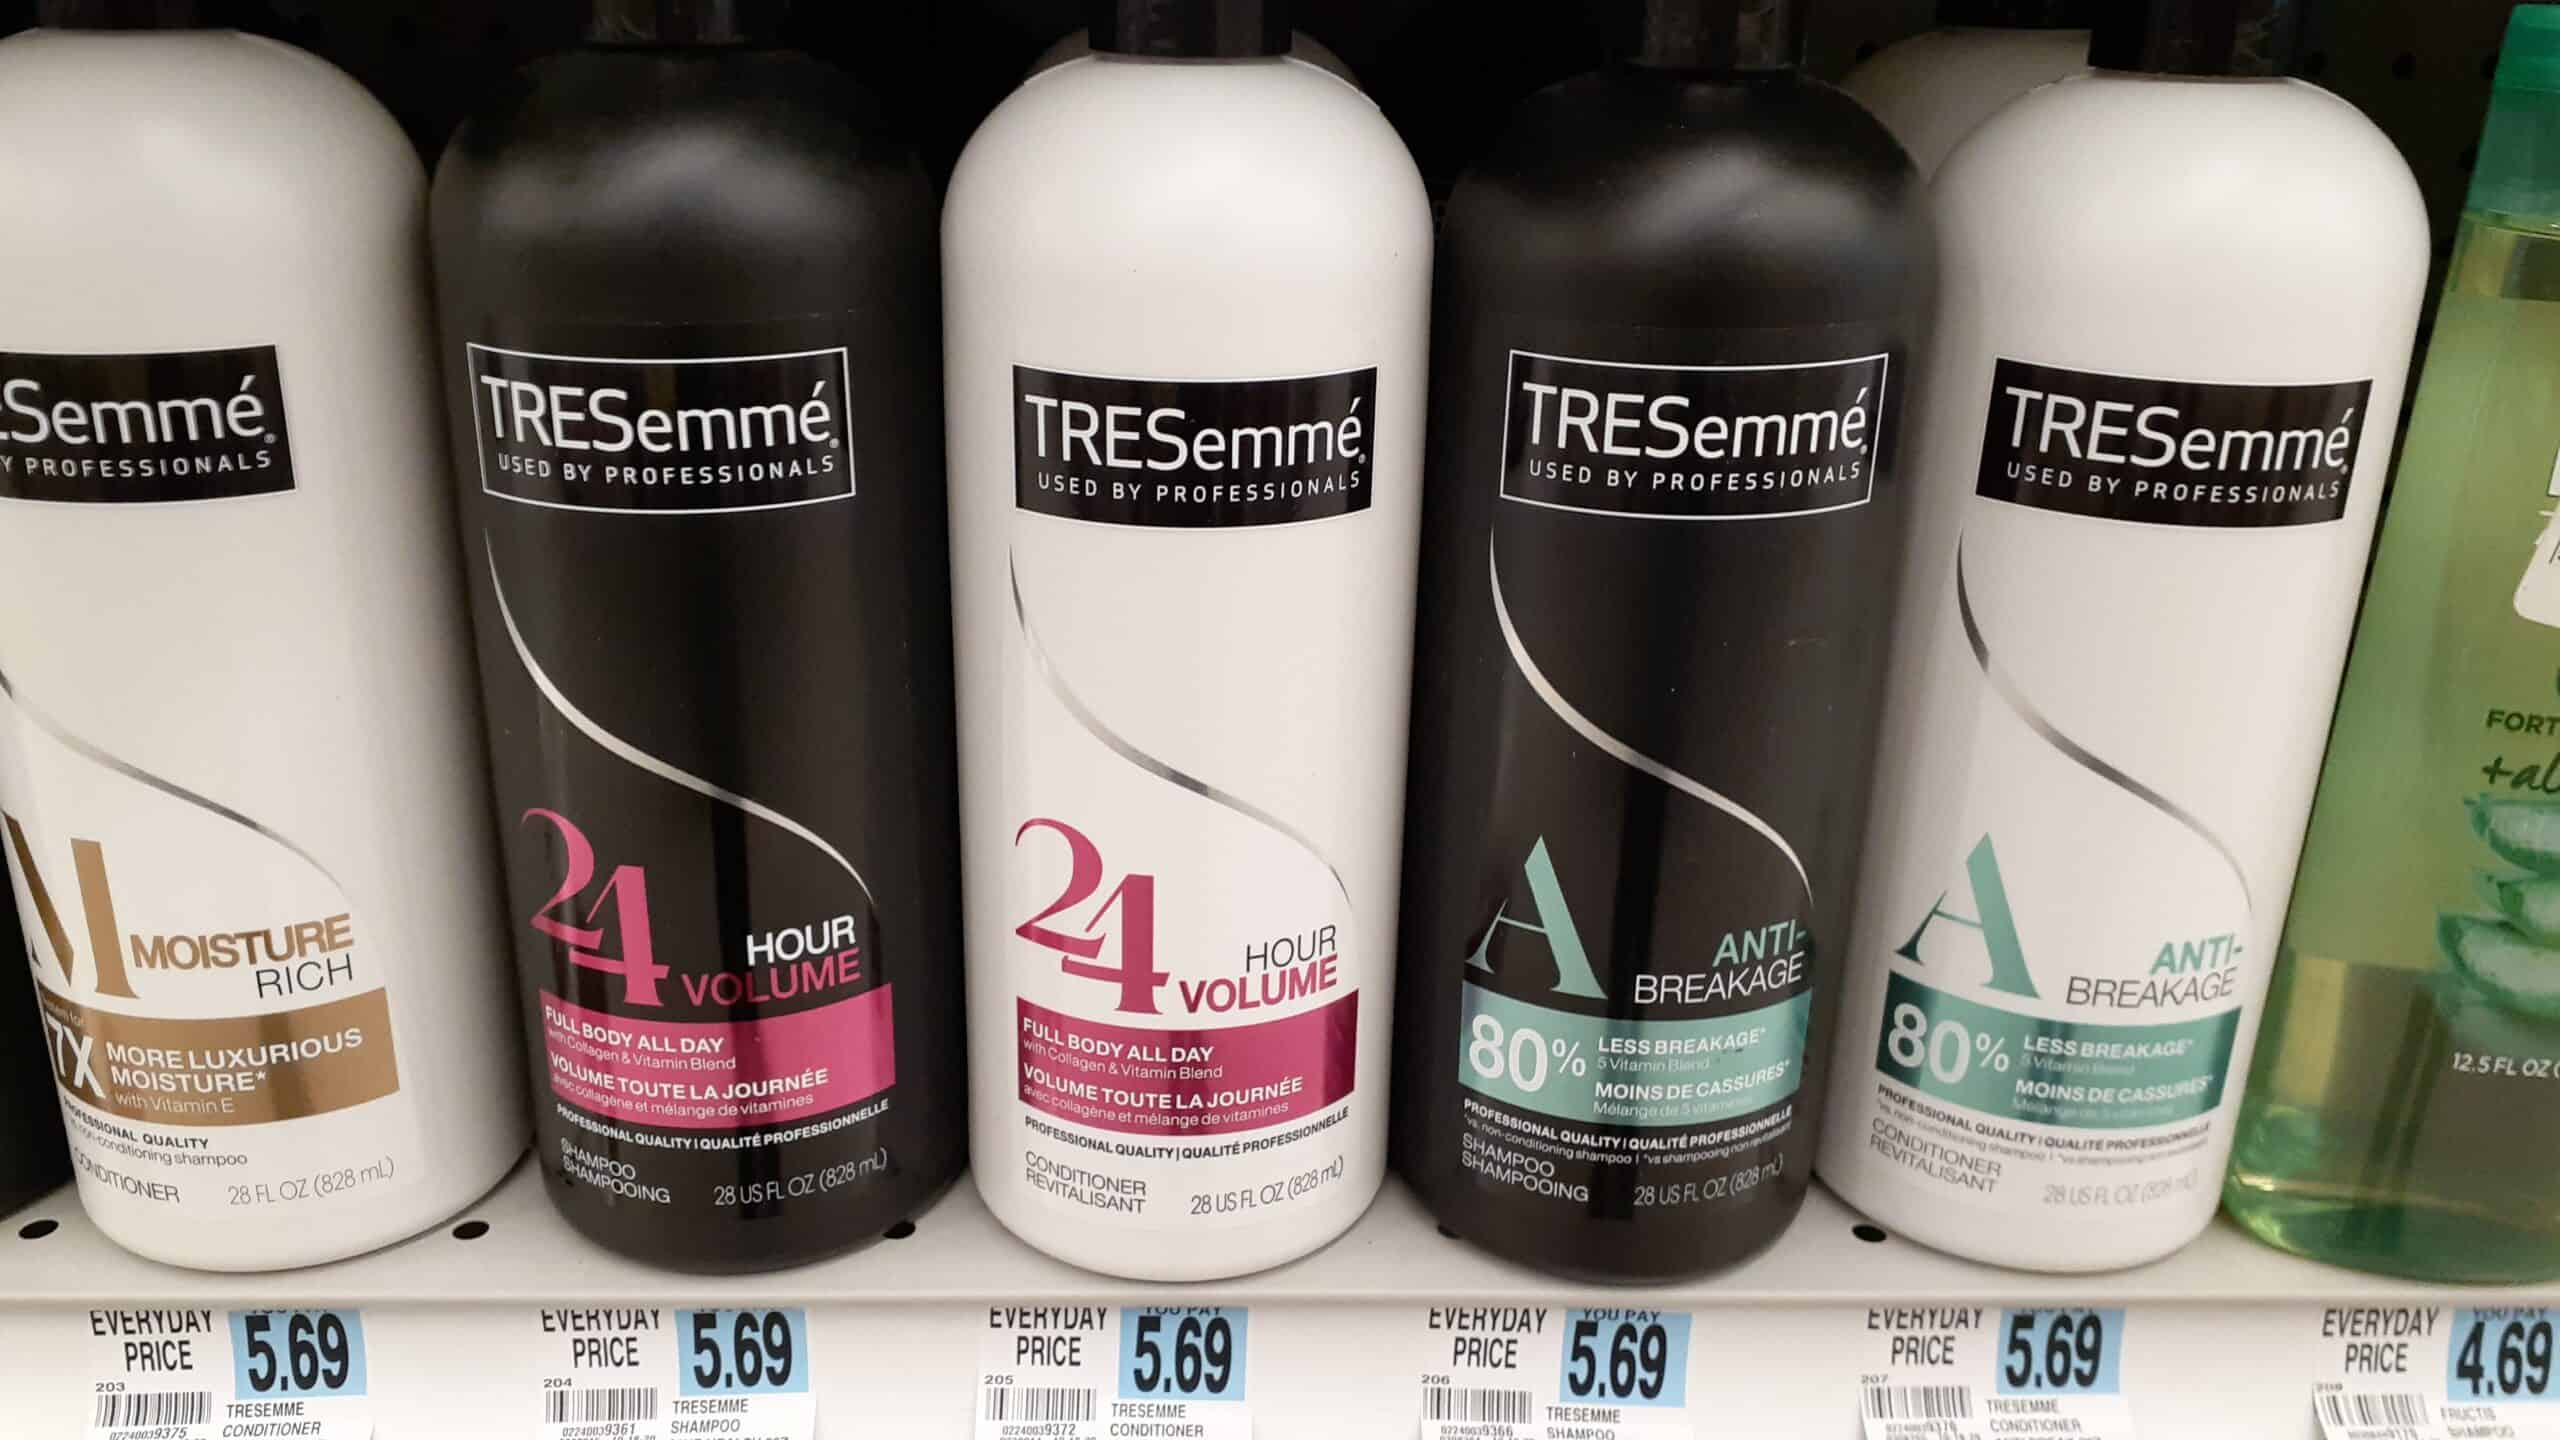 Tresemme at Rite Aid